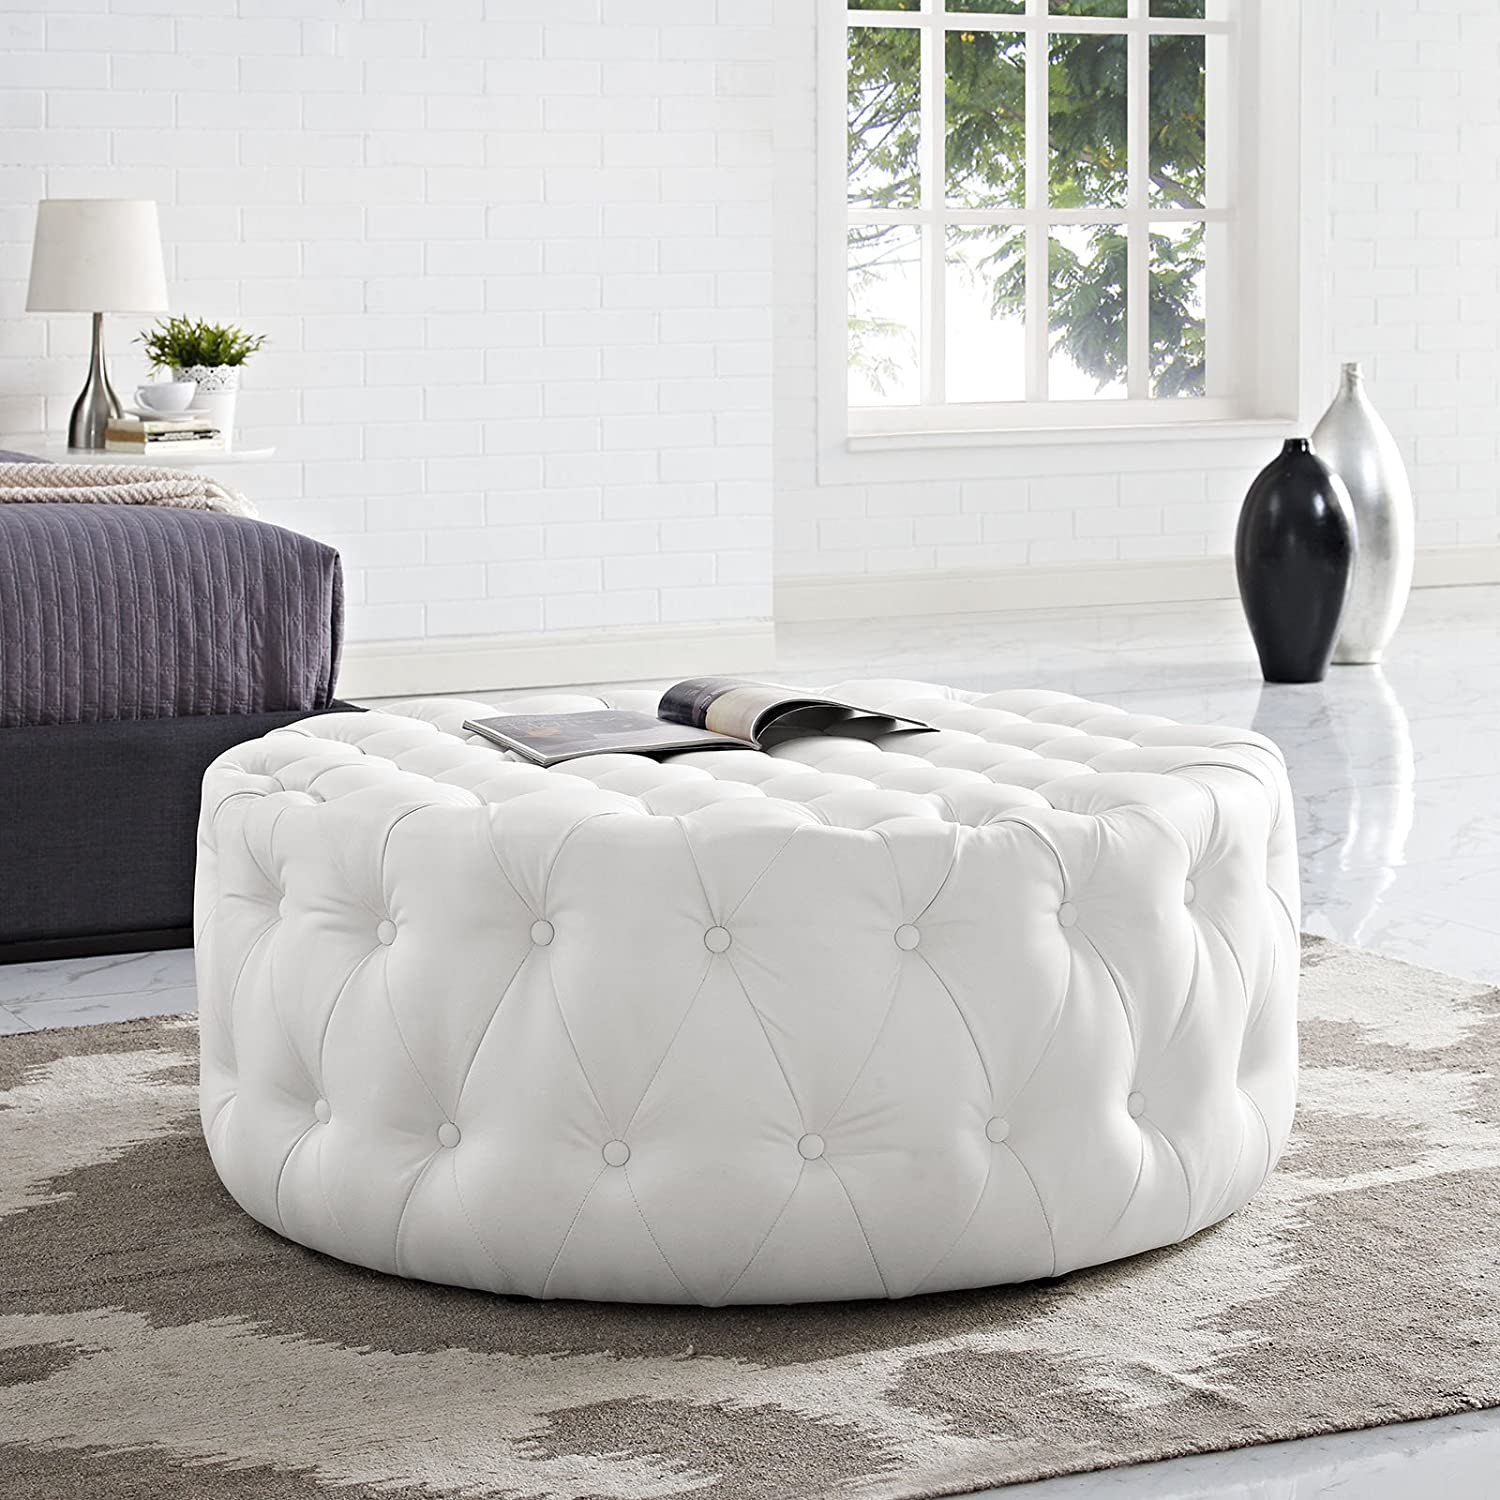 white-leather-ottoman-coffee-table-button-tufted-vinyl-plush-upholstered-living-room-table